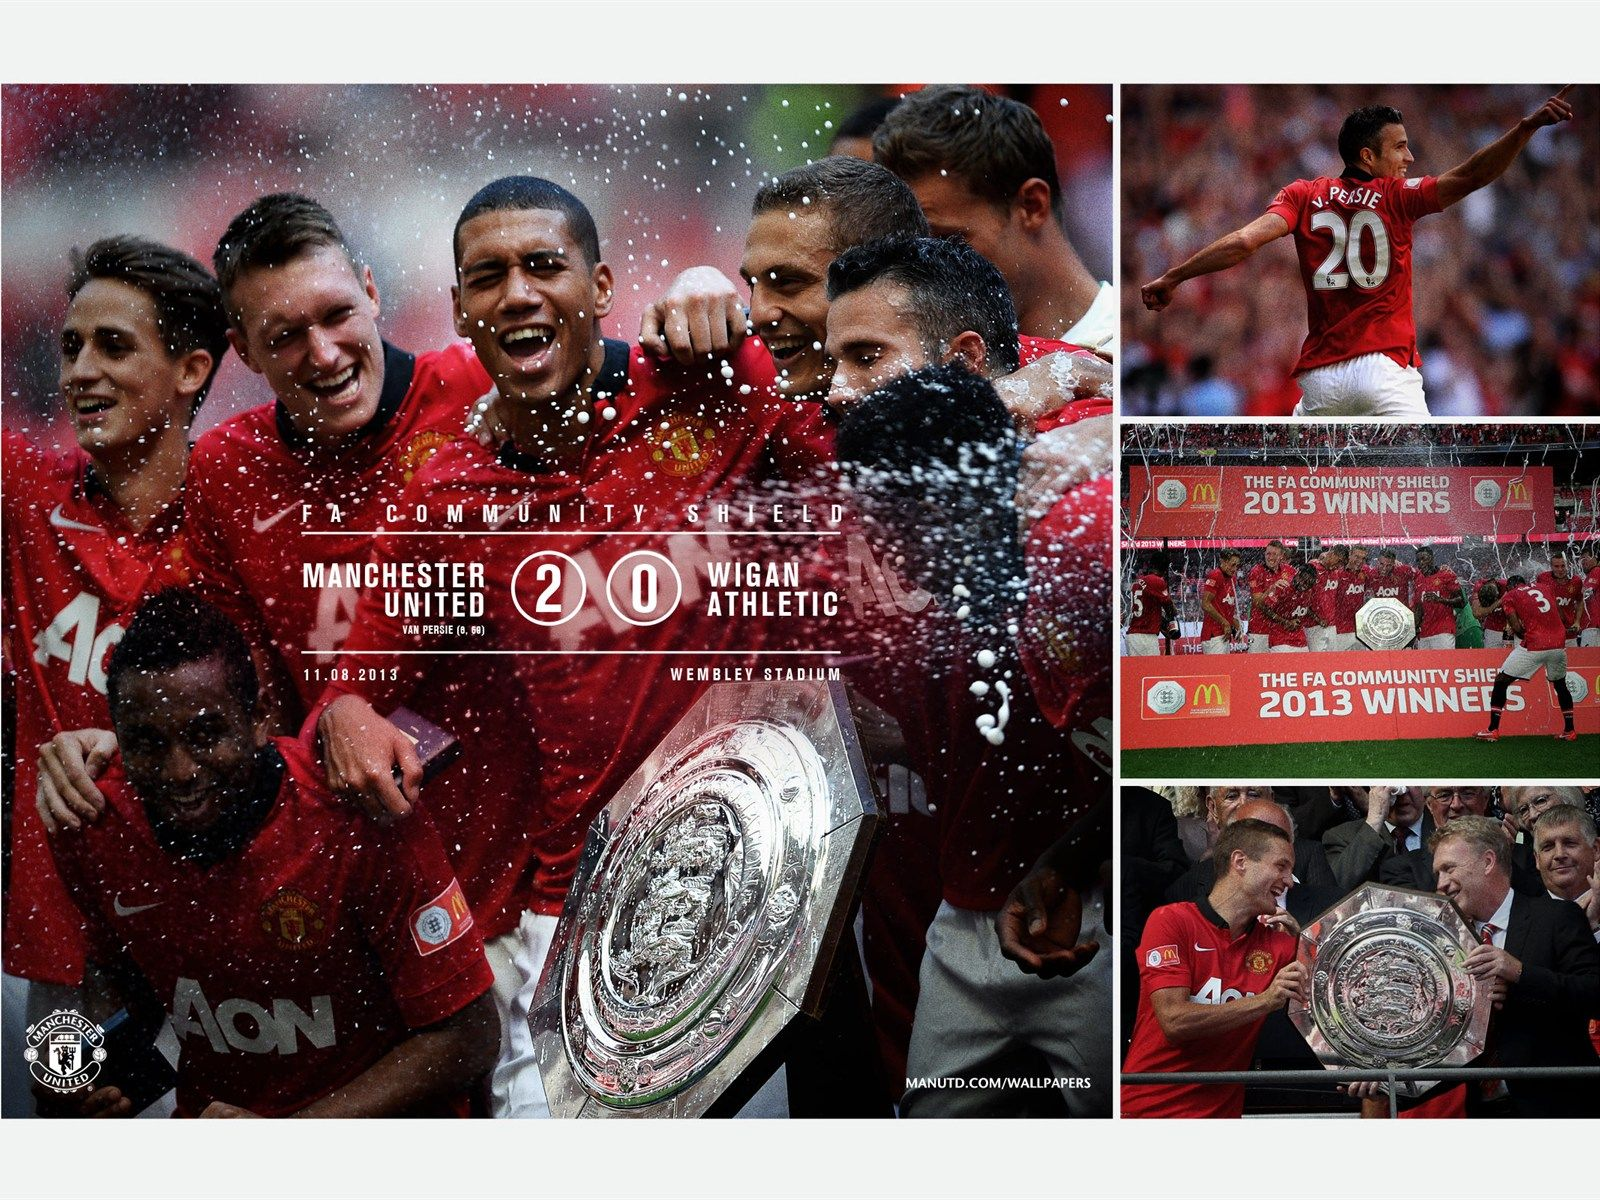 Manchester United 443 Manchester United Official Manchester United Website Wigan